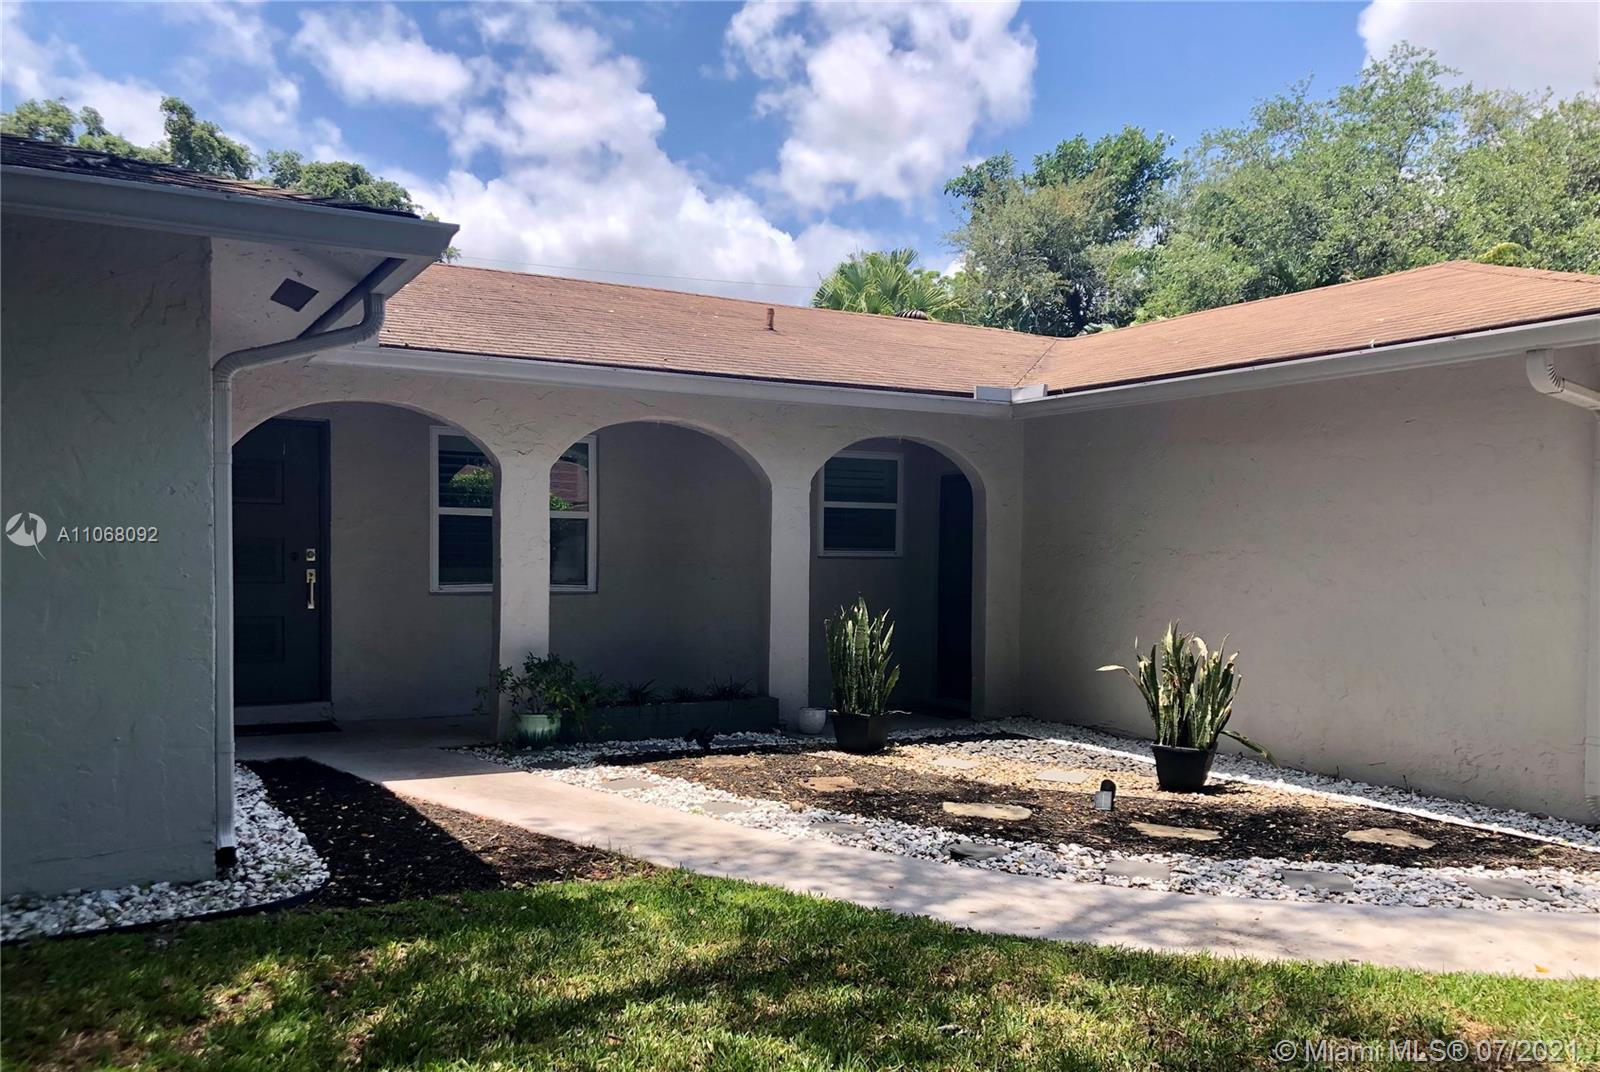 Riverland, 1770 SW 25th Ave, Fort Lauderdale, Florida 33312